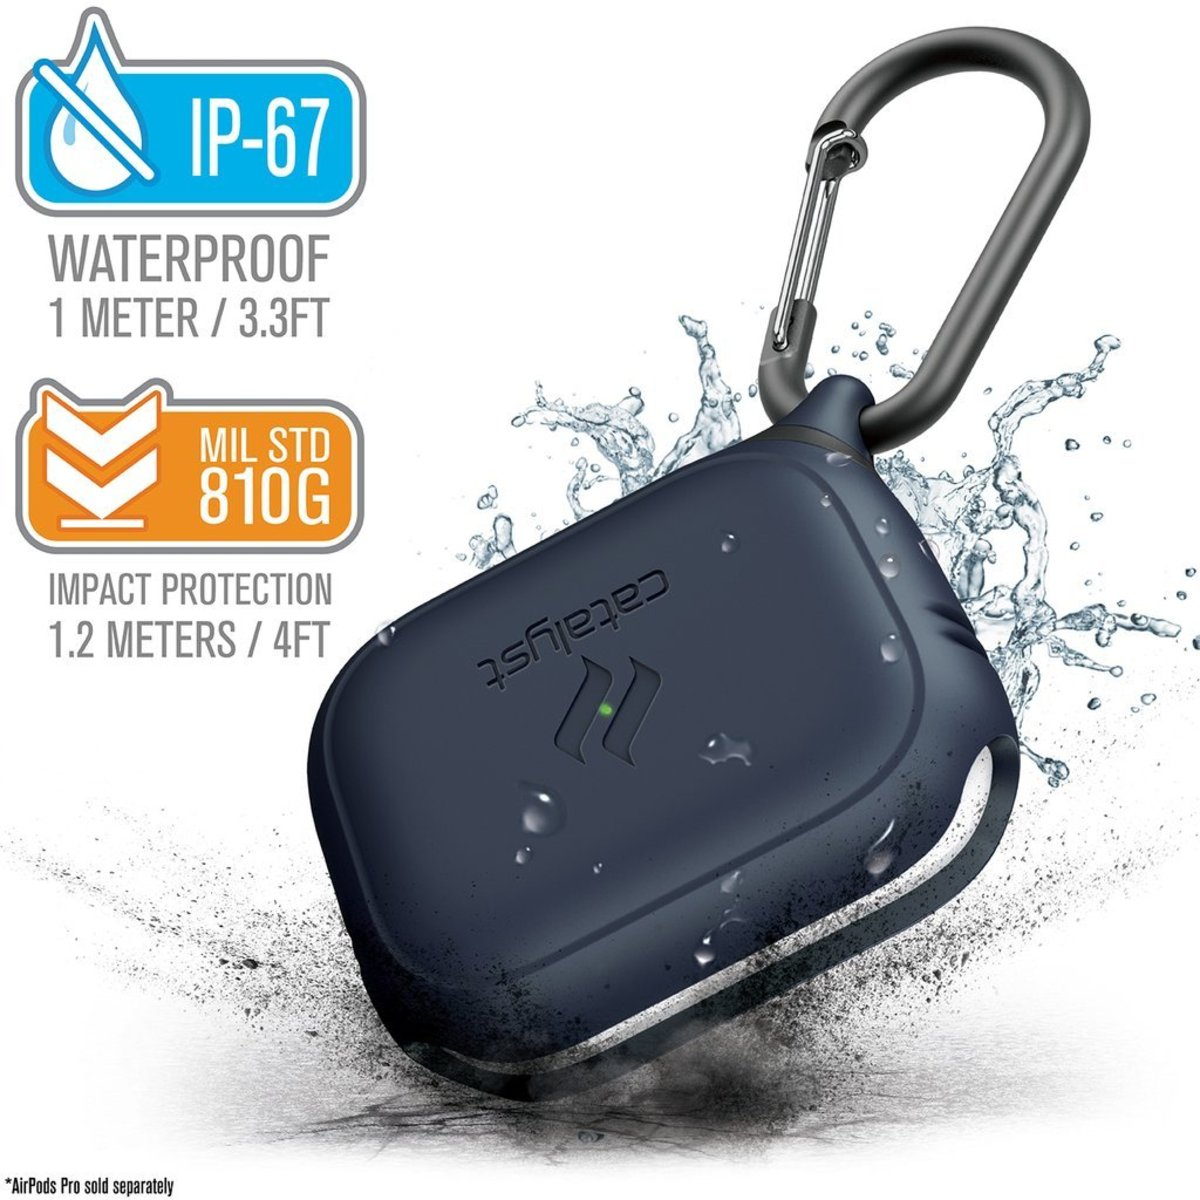 HK Supplier IP67 Waterproof Drop Proof case for airpods Pro Midnight Blue